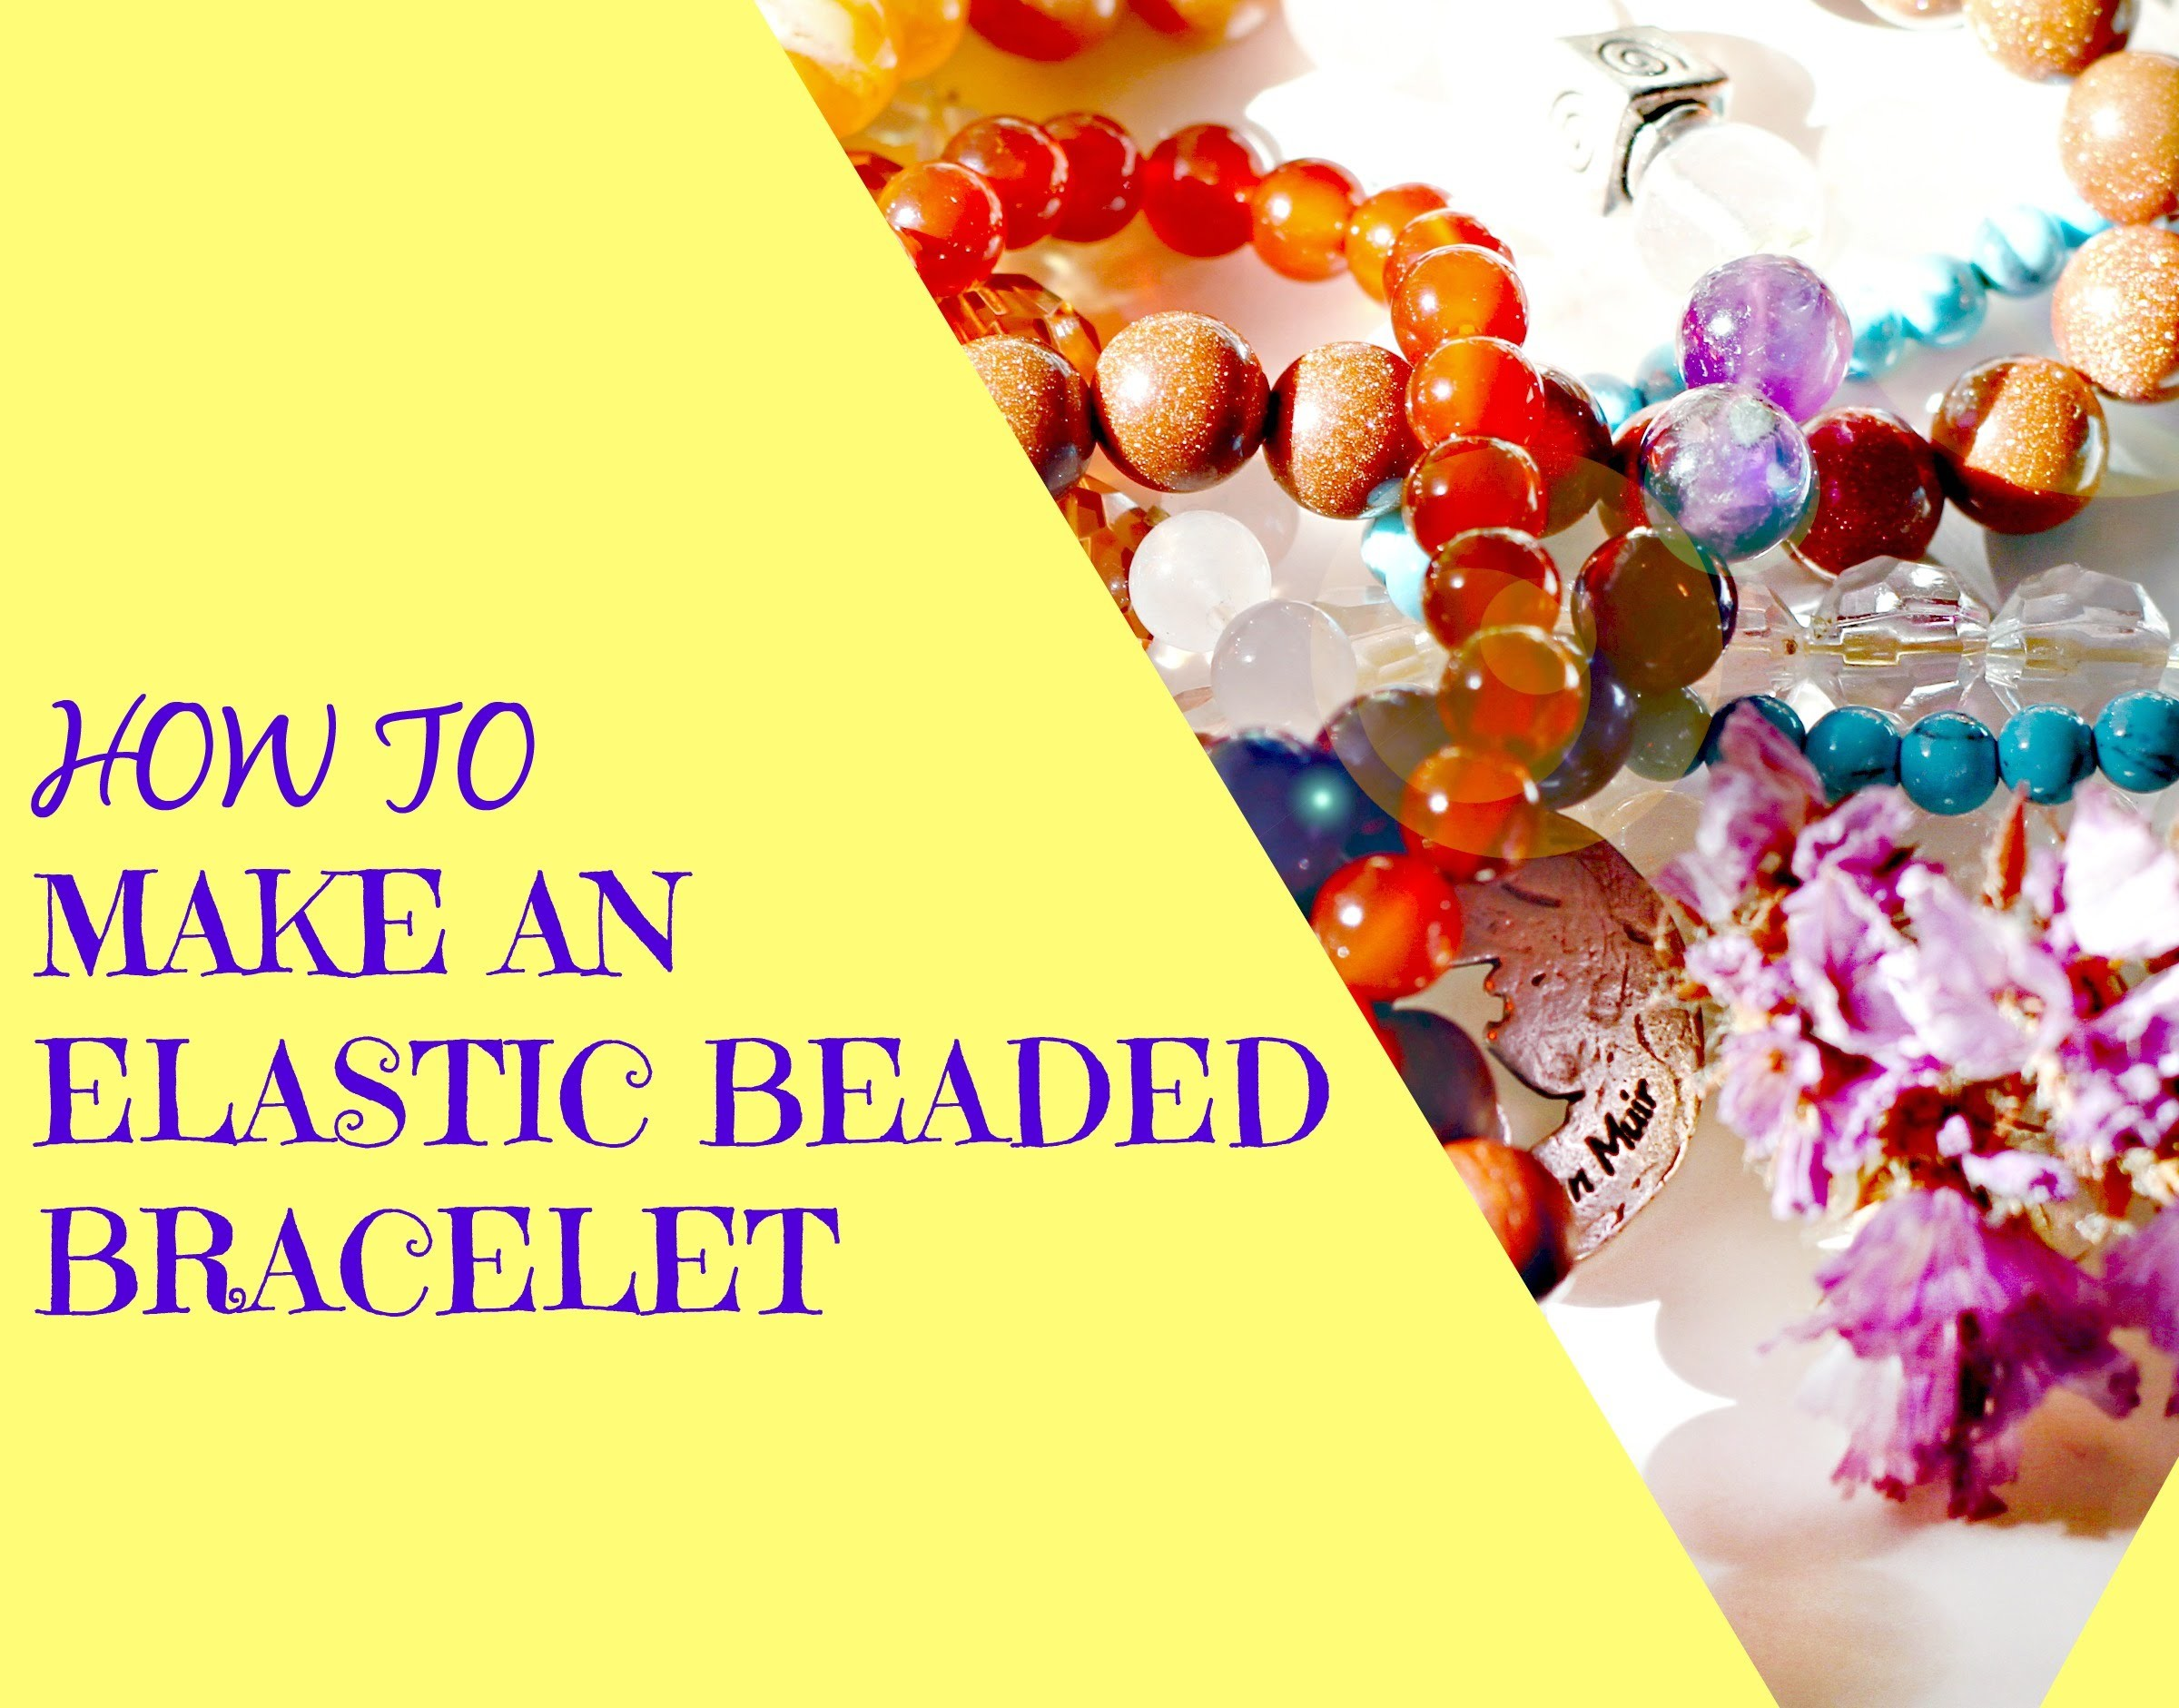 Gemstone Bracelet Tutorial | Beaded Bracelet | Stretch Bracelet